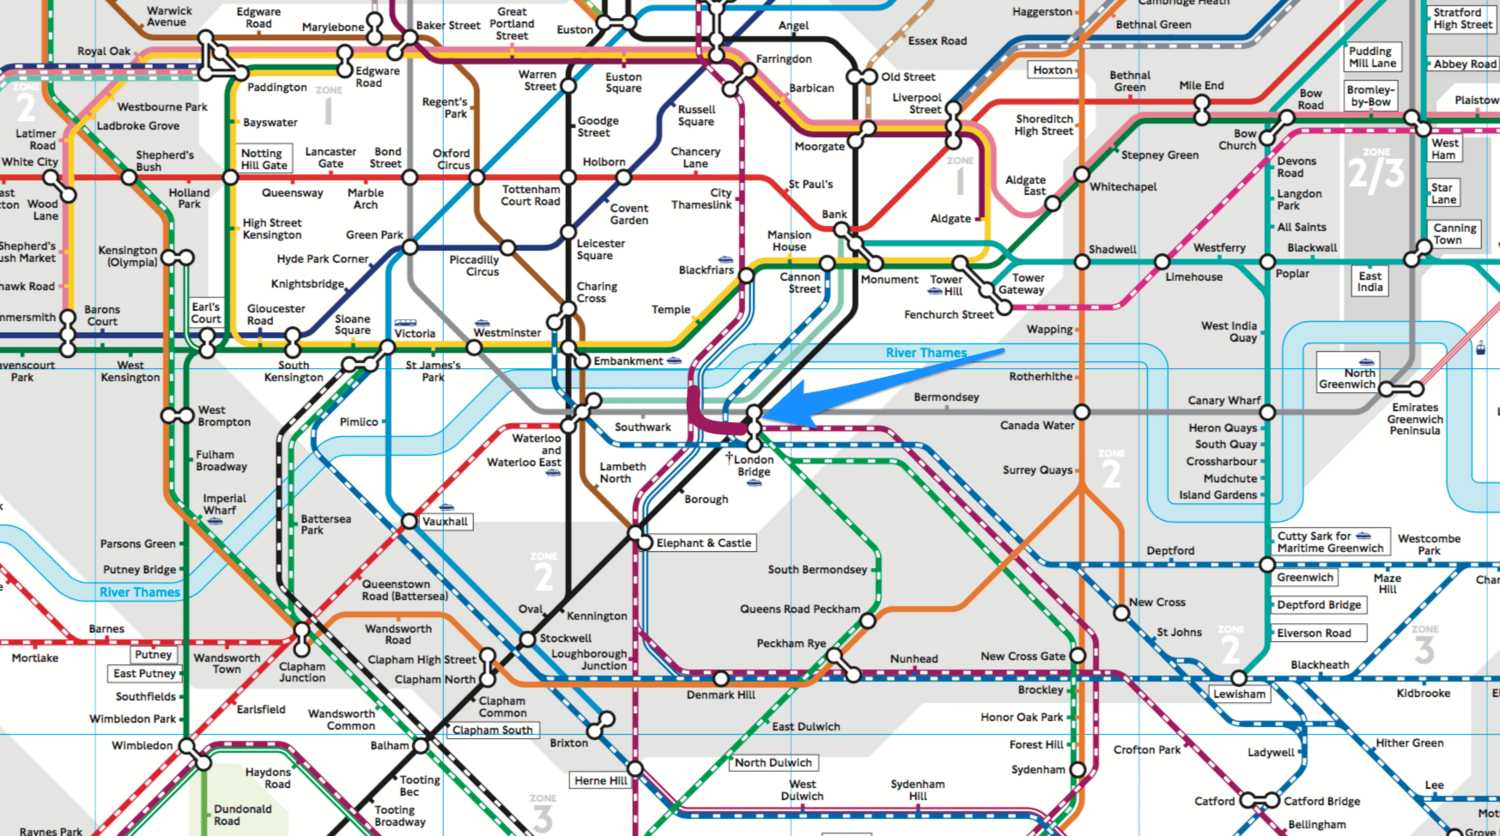 Crudely edited version of  the TfL tube and rail map found here